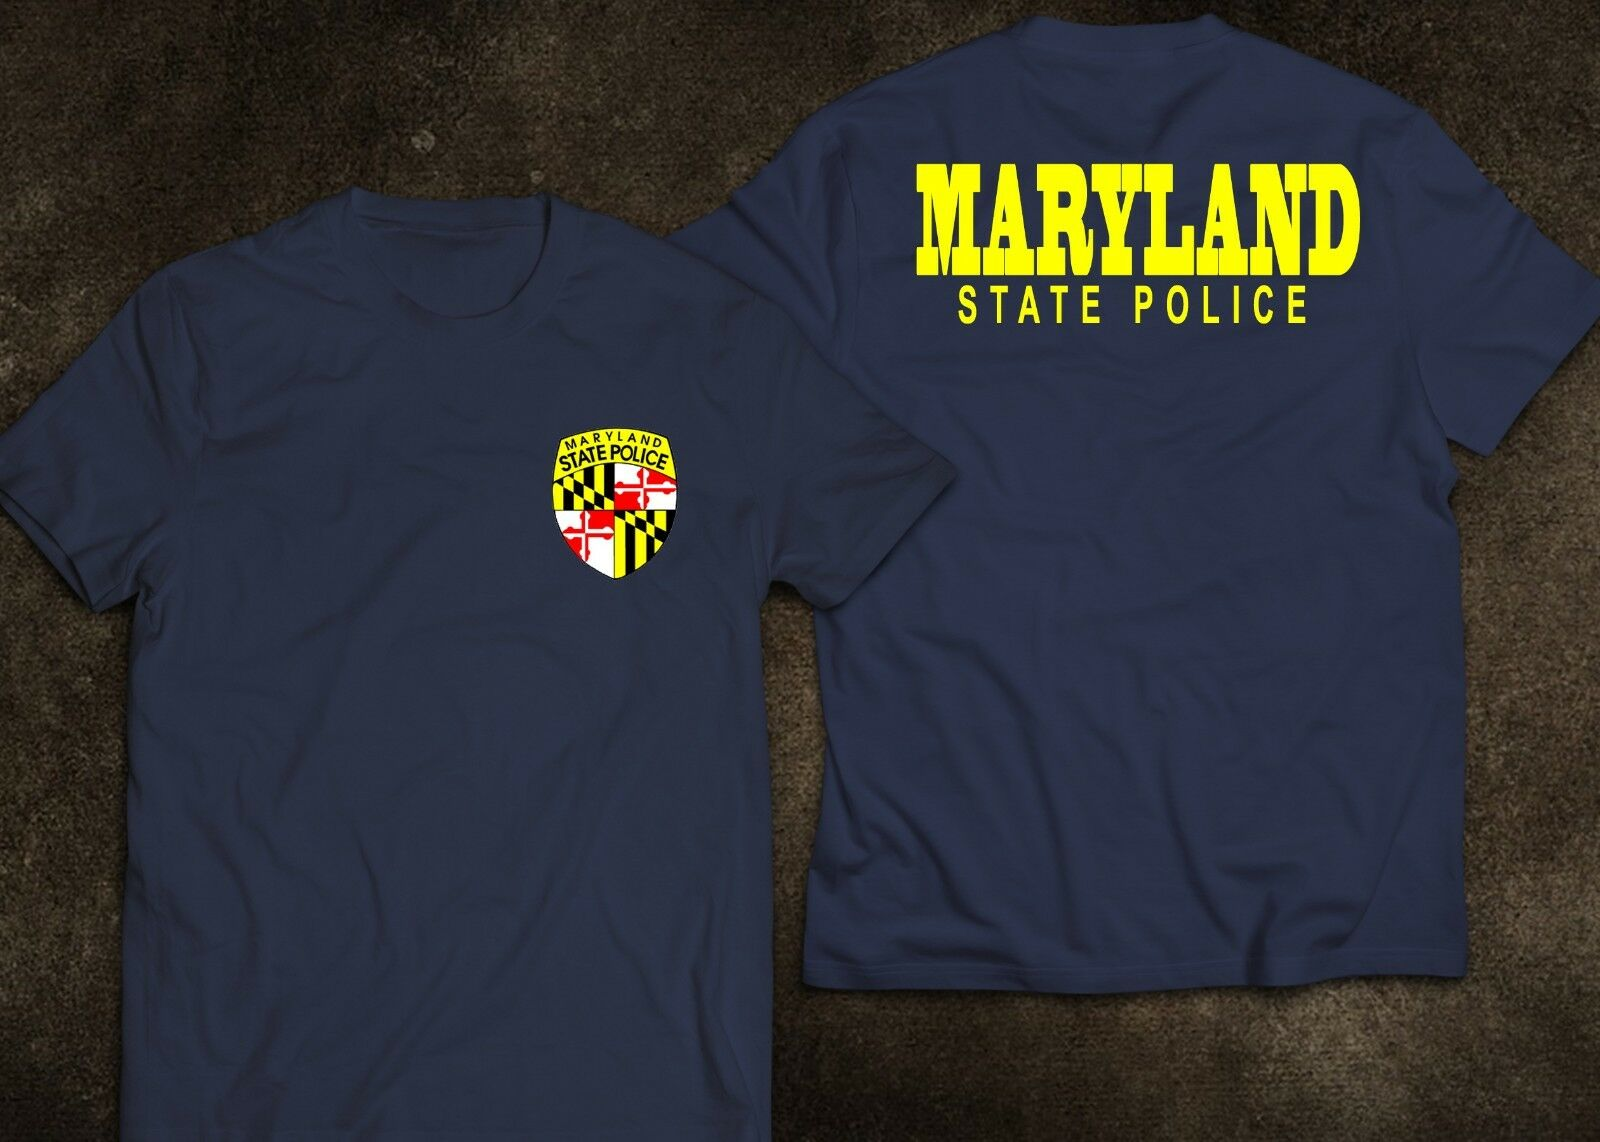 2019 Funny New Maryland State Police United States Department Navy Black White T Shirt Double Side Unisex Tee in T Shirts from Men 39 s Clothing